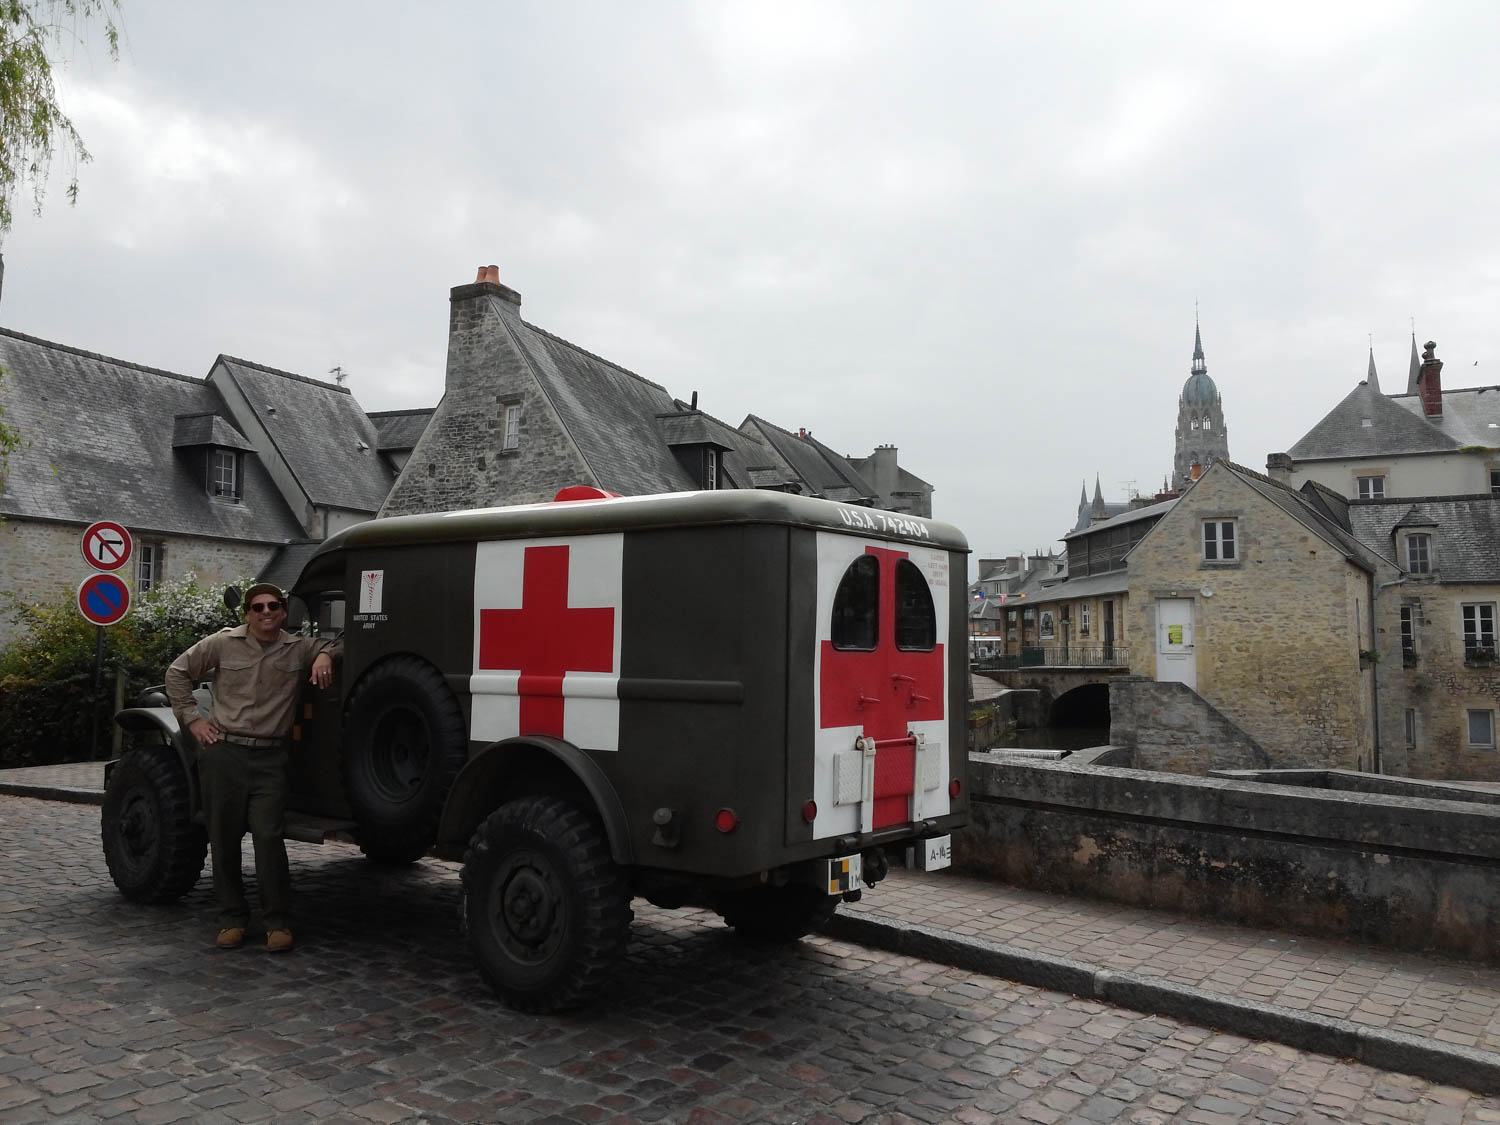 Aaron Robinson with his 1942 Dodge WC54 ambulance In Bayeux, Normandy, the first major city in France to be liberated after D-Day.